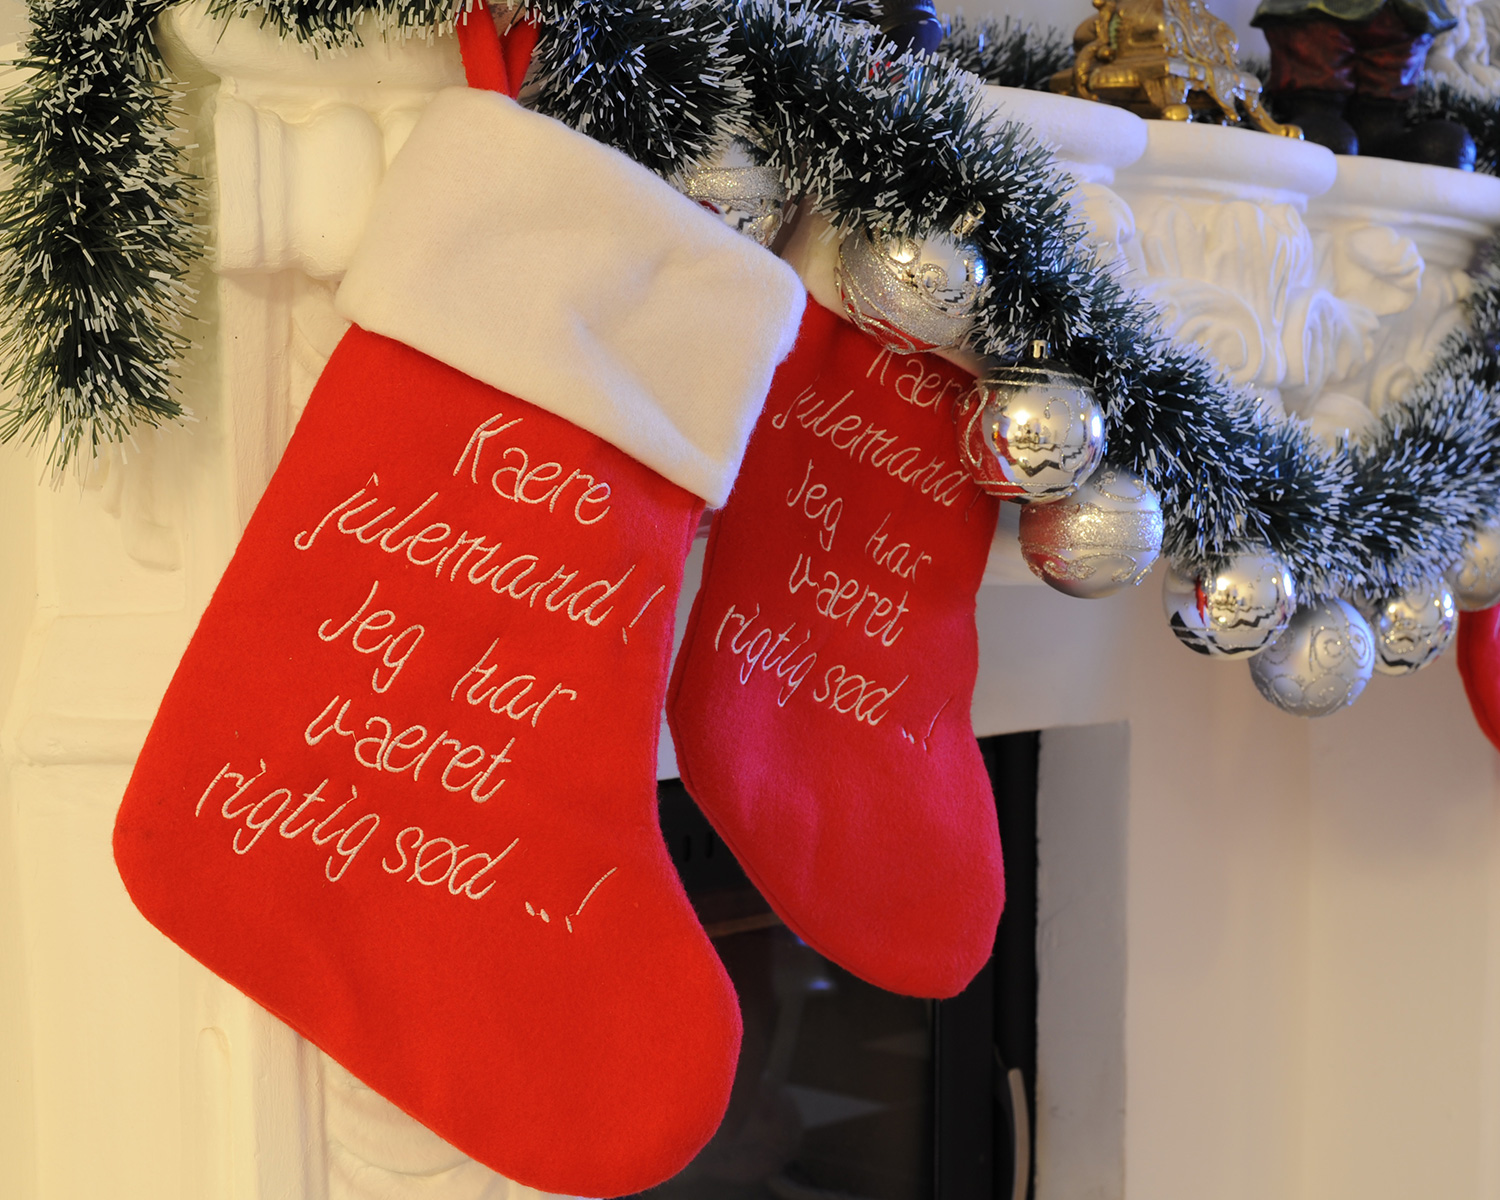 Christmas stockings from Lakeside hung from mantel